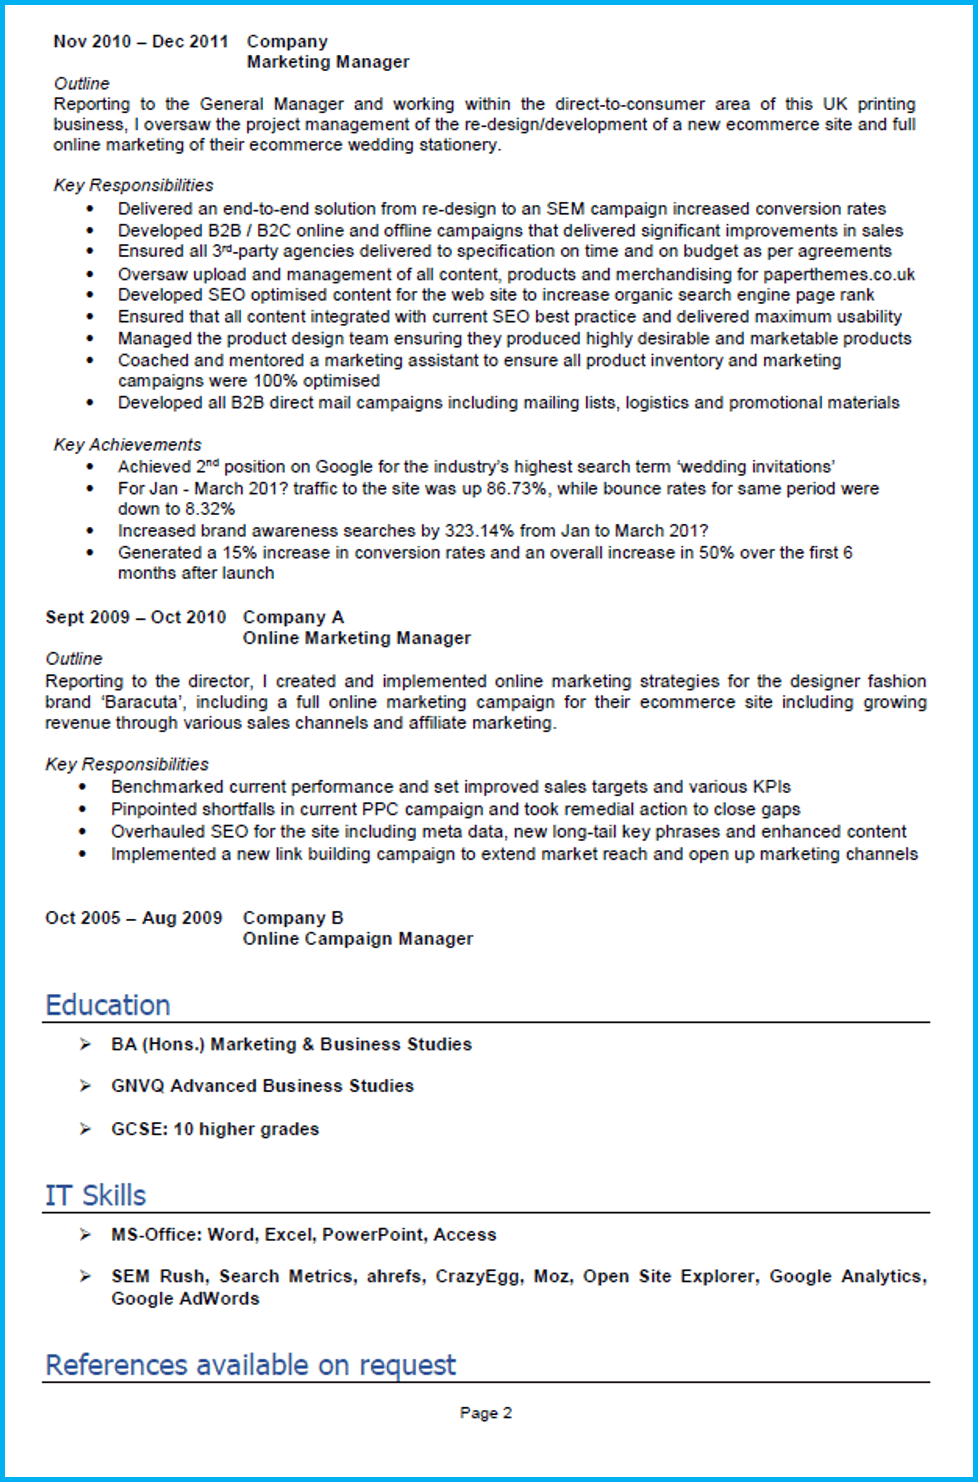 Digital marketing CV example (with writing guide and CV